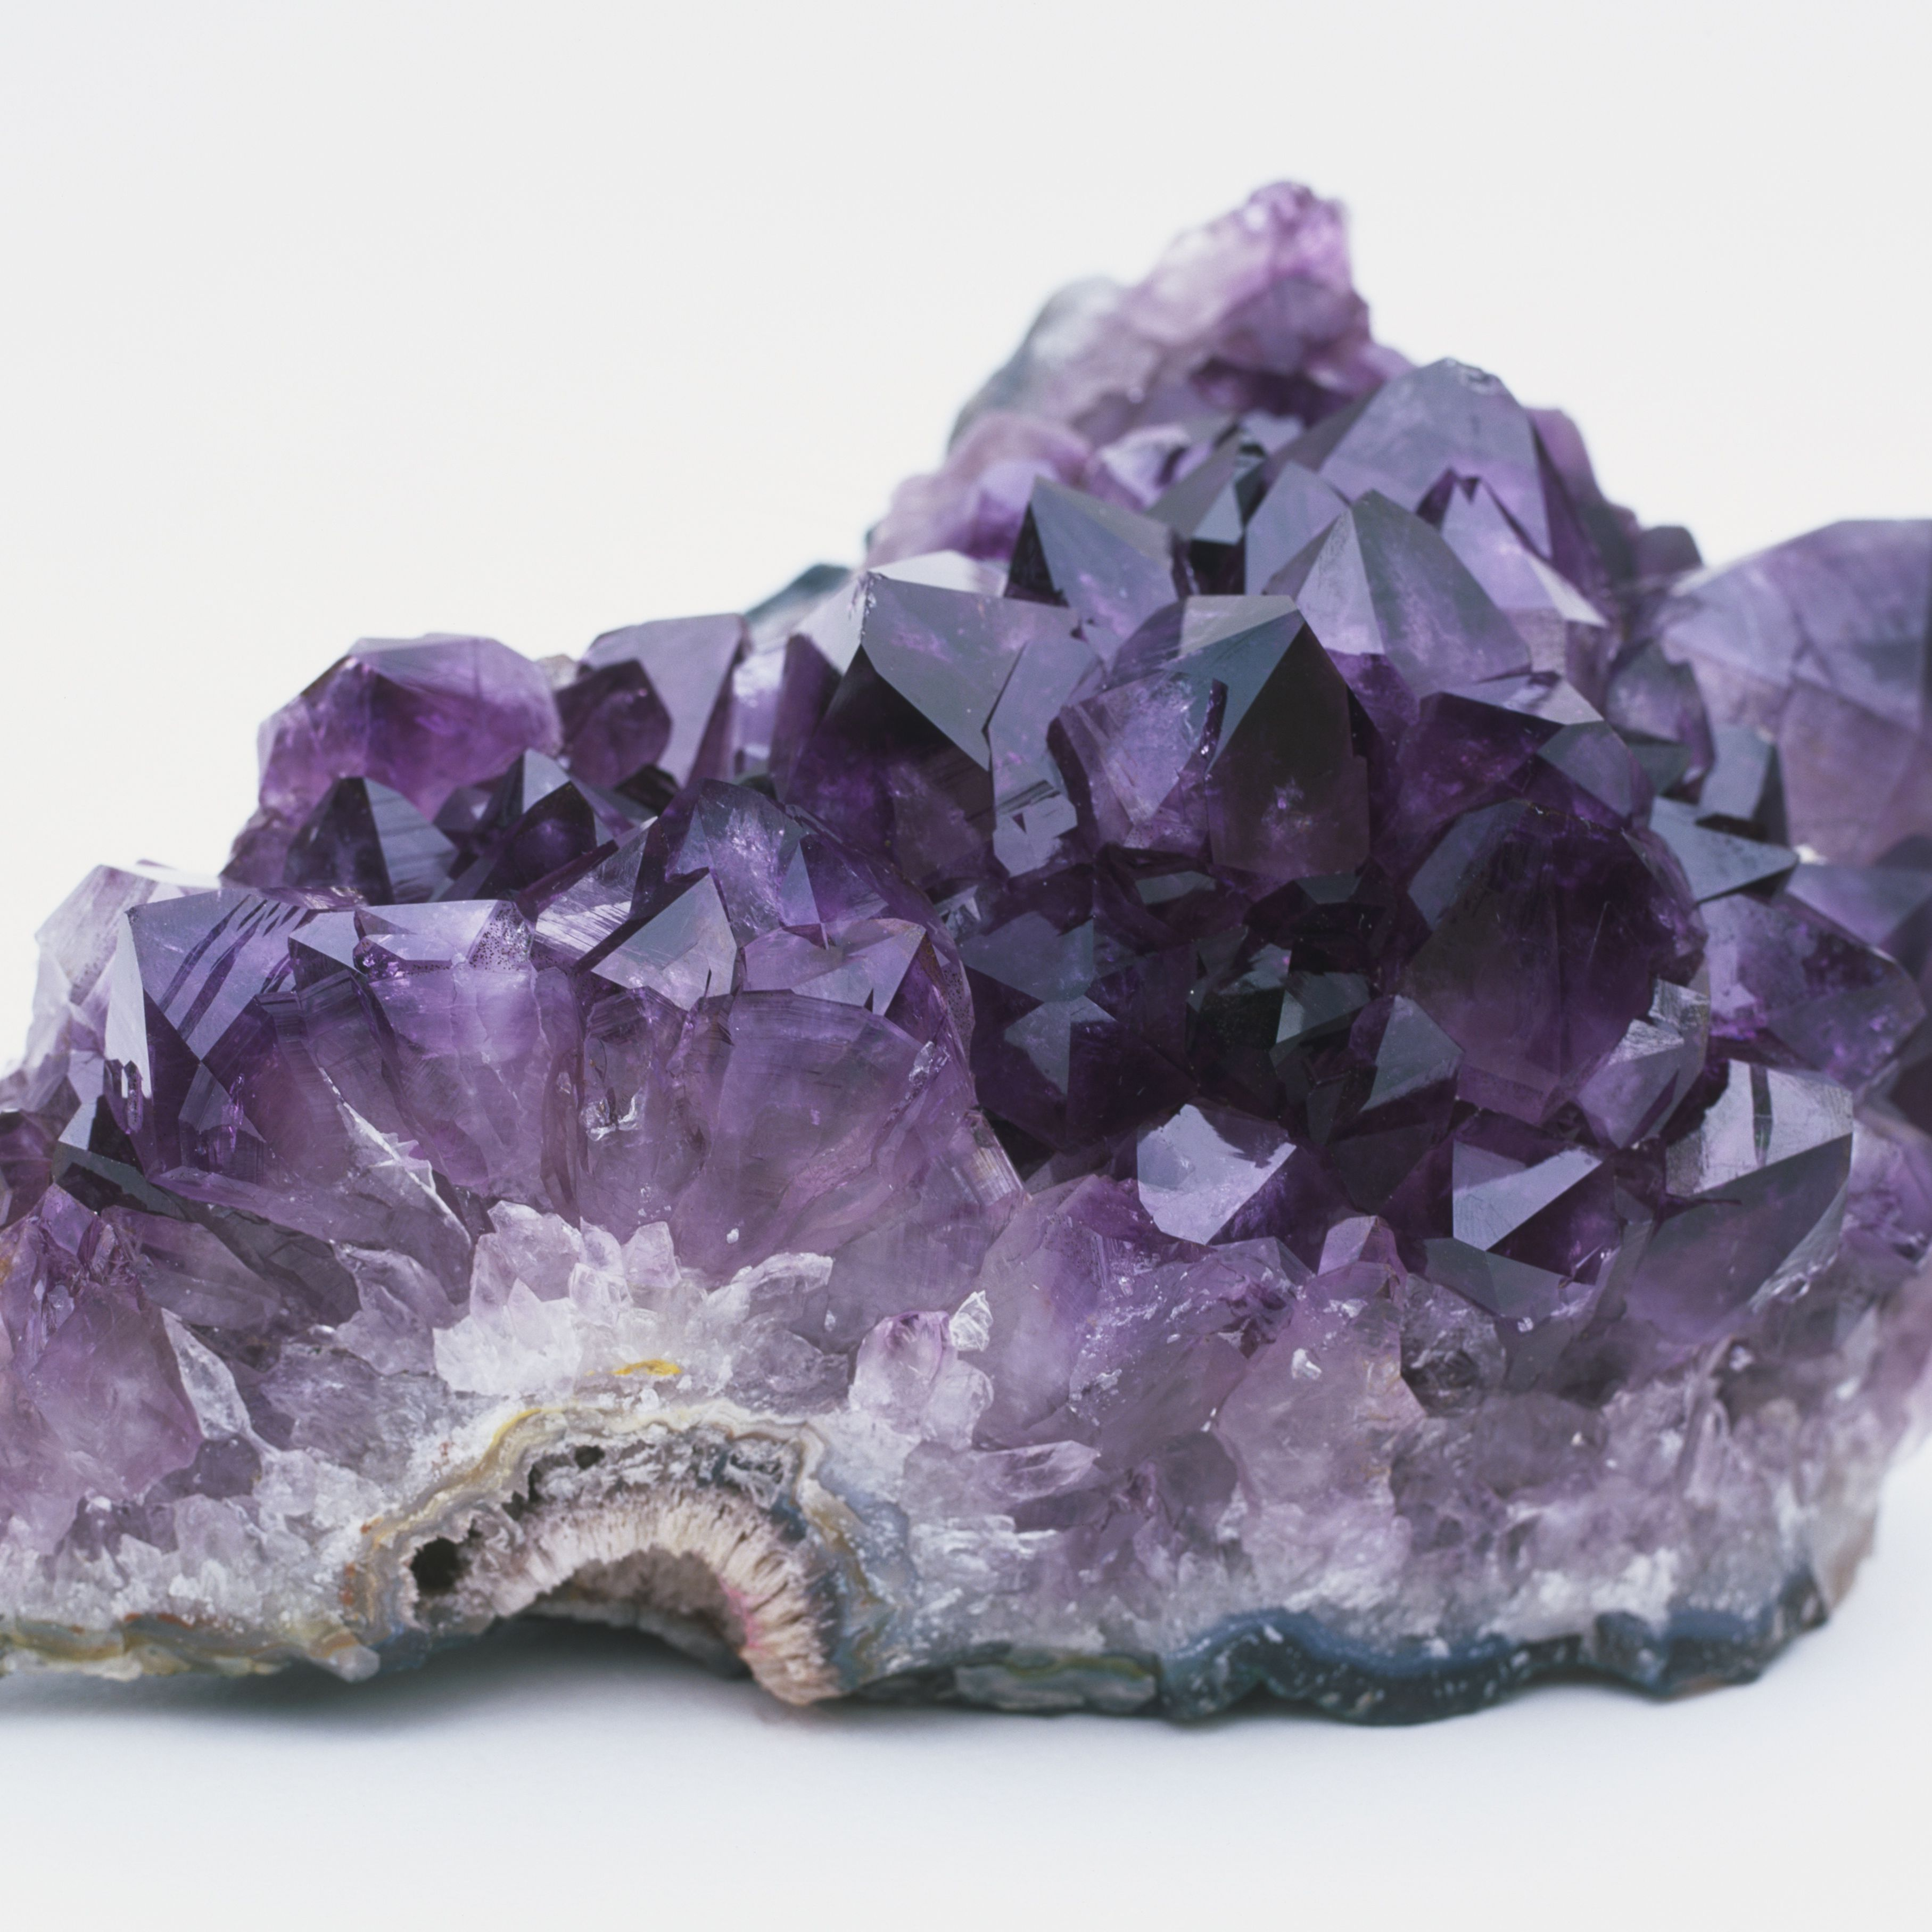 amethyst use in healing